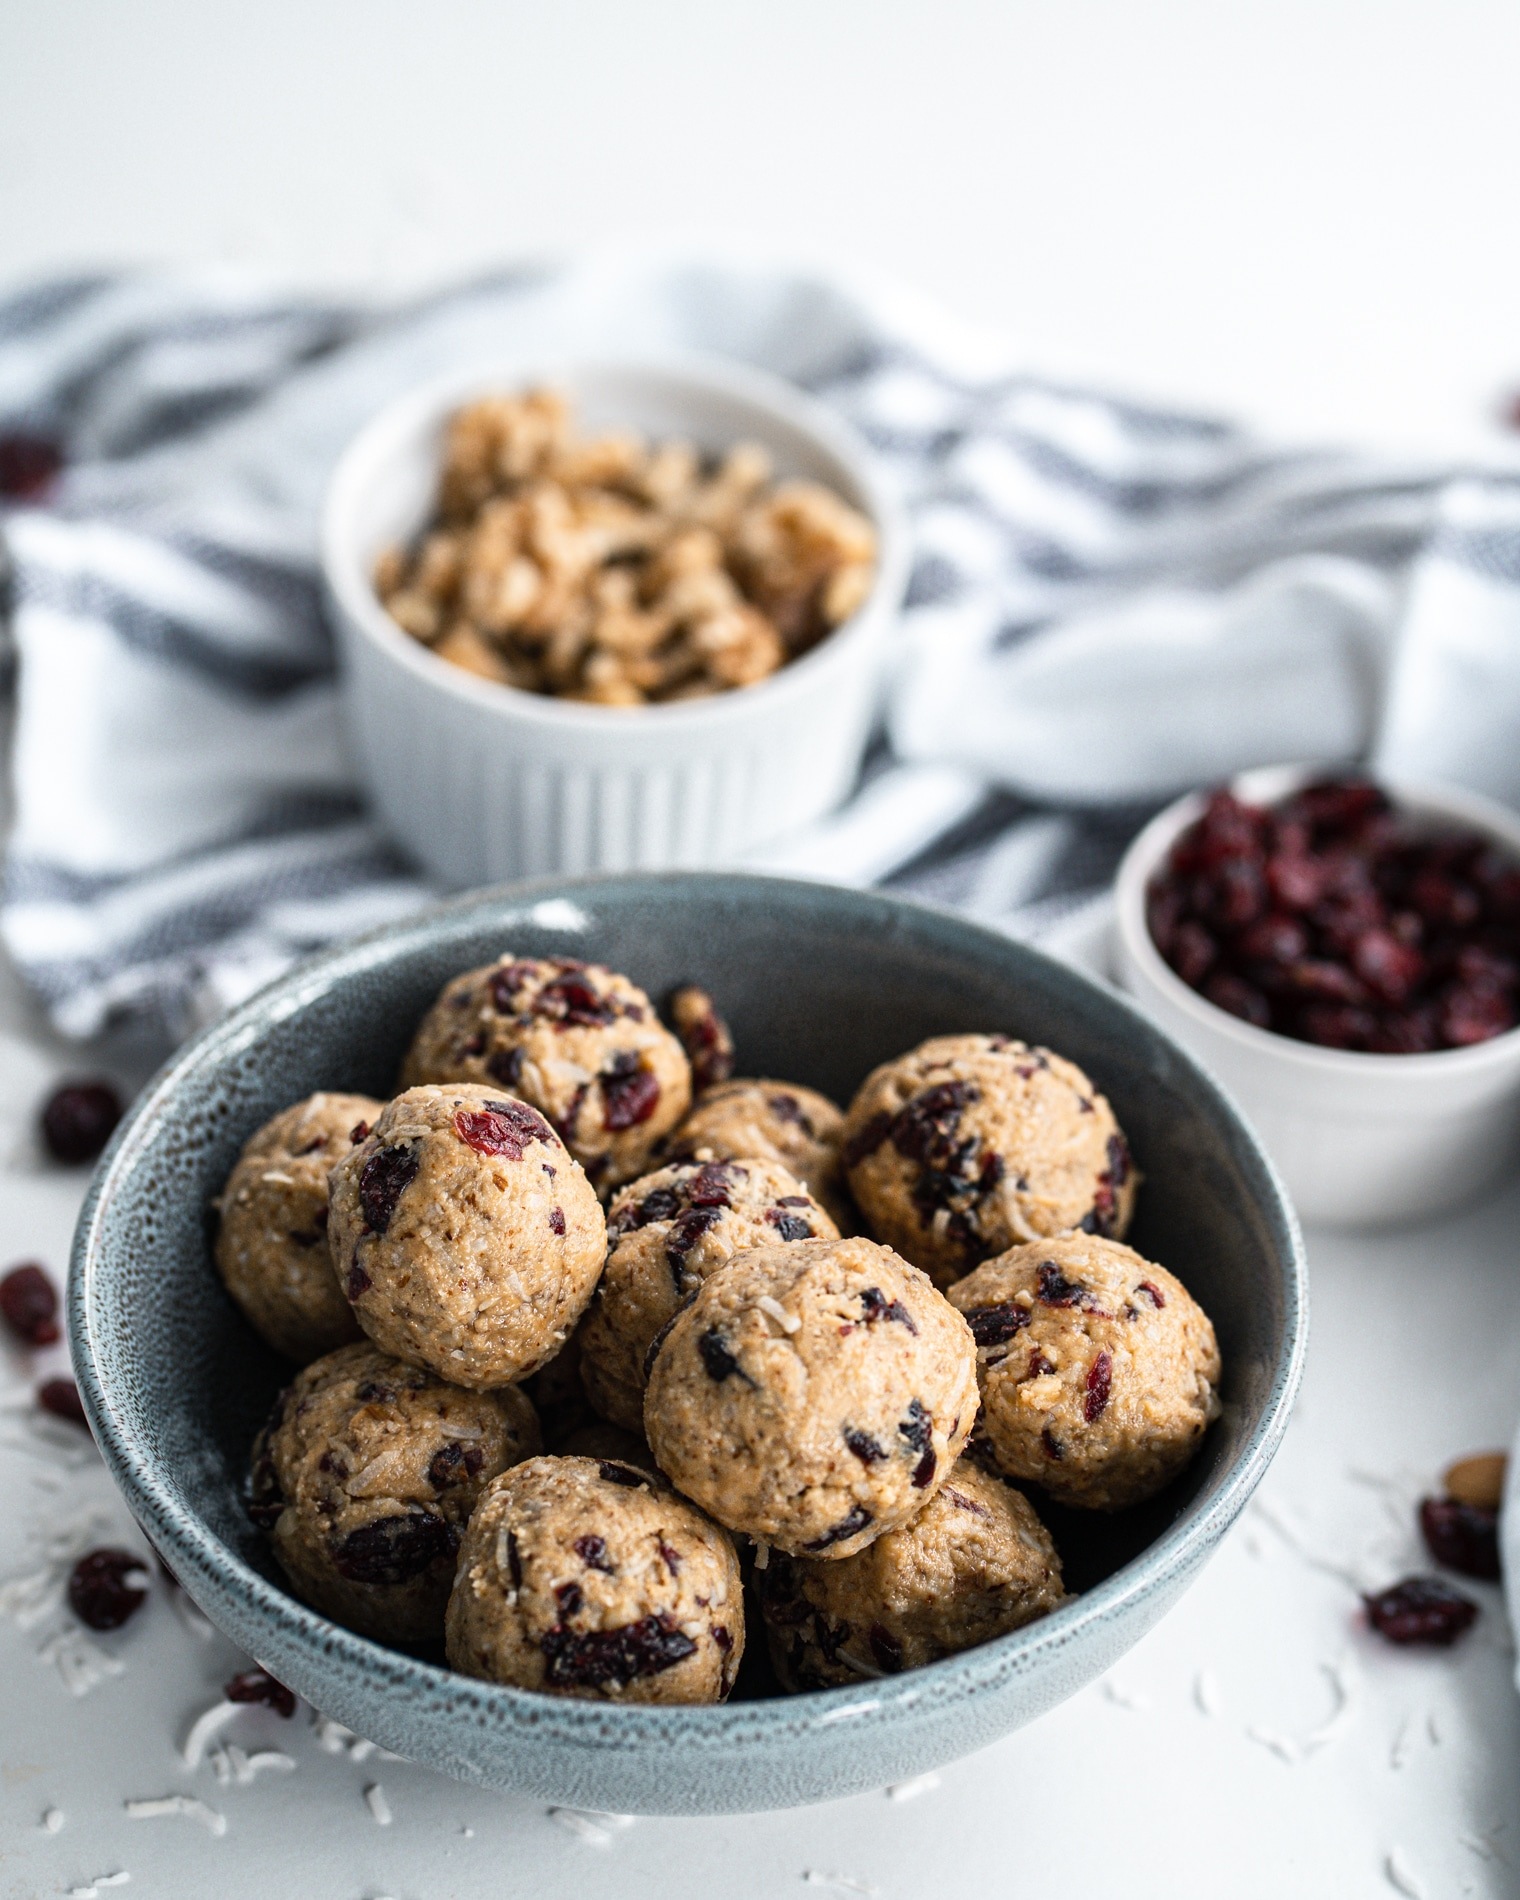 No Bake Cranberry Almond Energy Balls from Lauren Kelly Nutrition